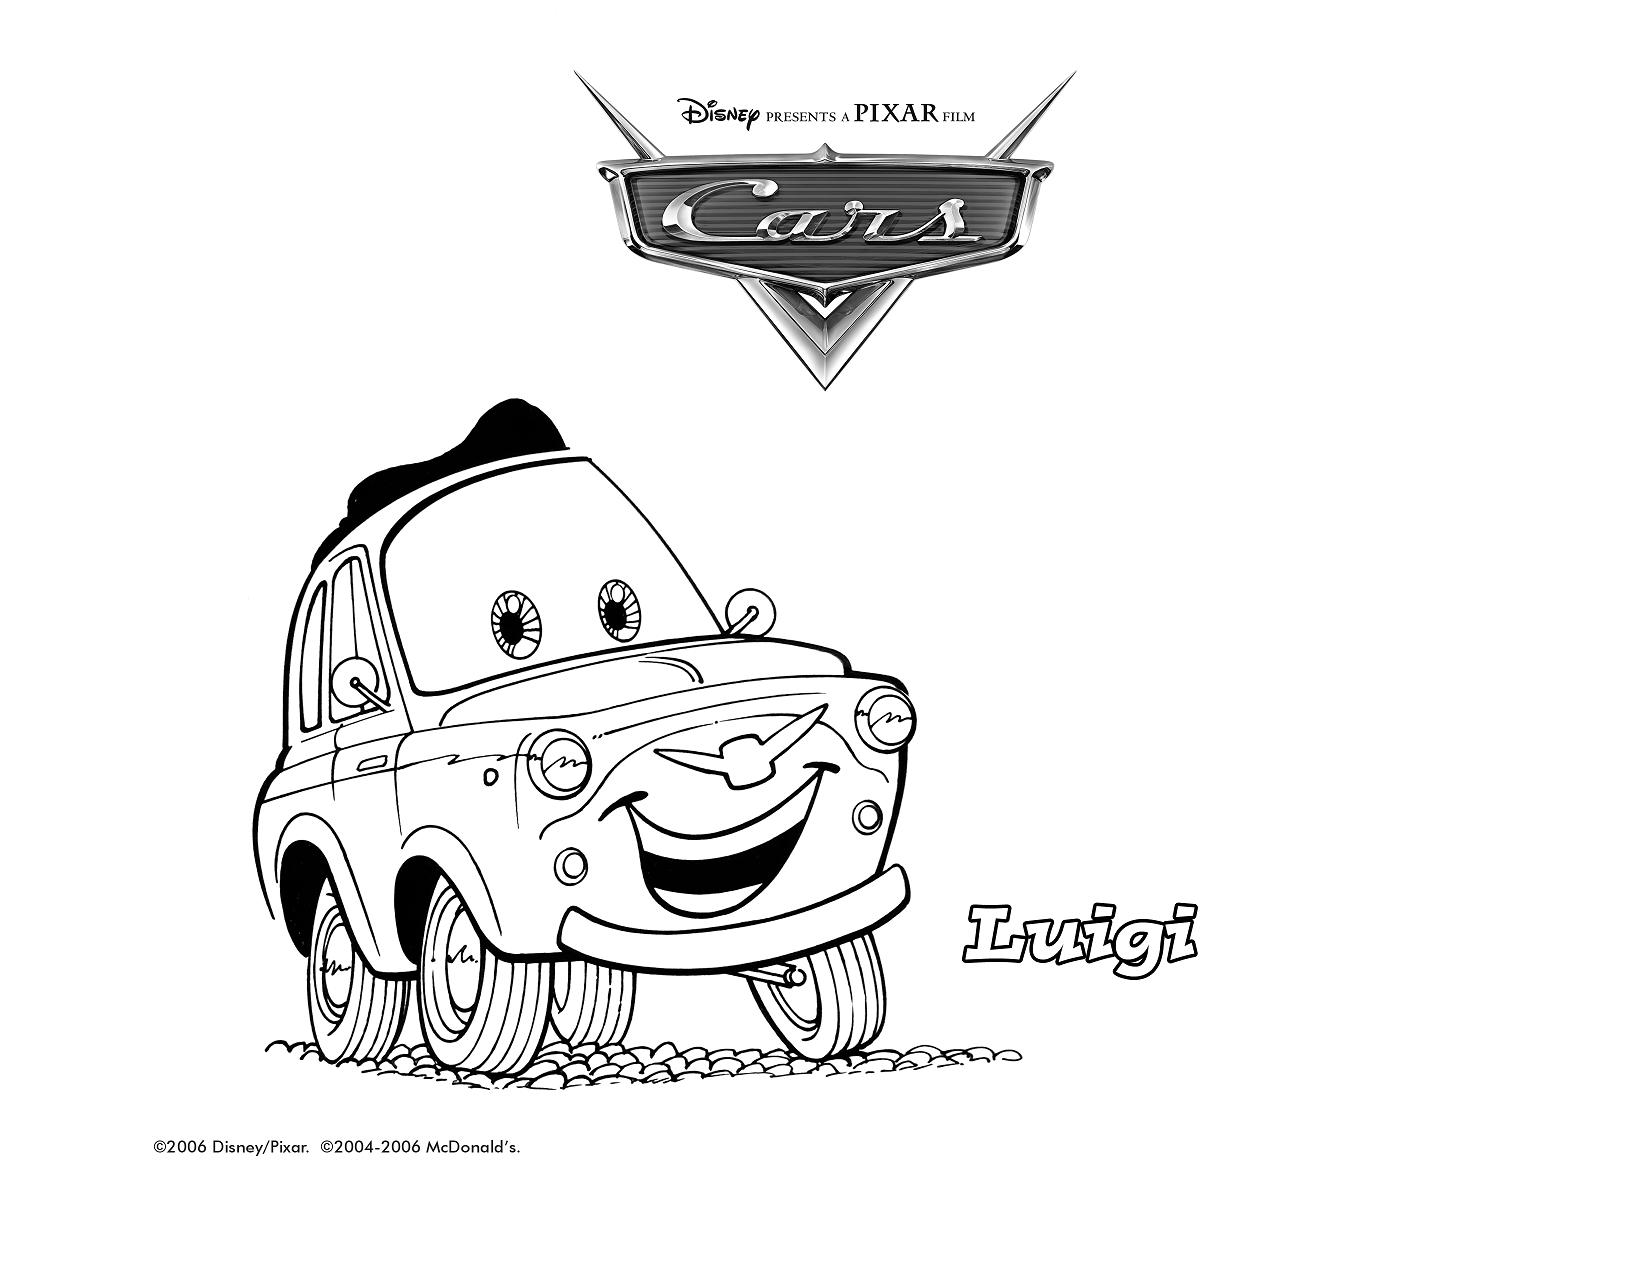 Cars guido coloring pages - Figuras Para Colorir